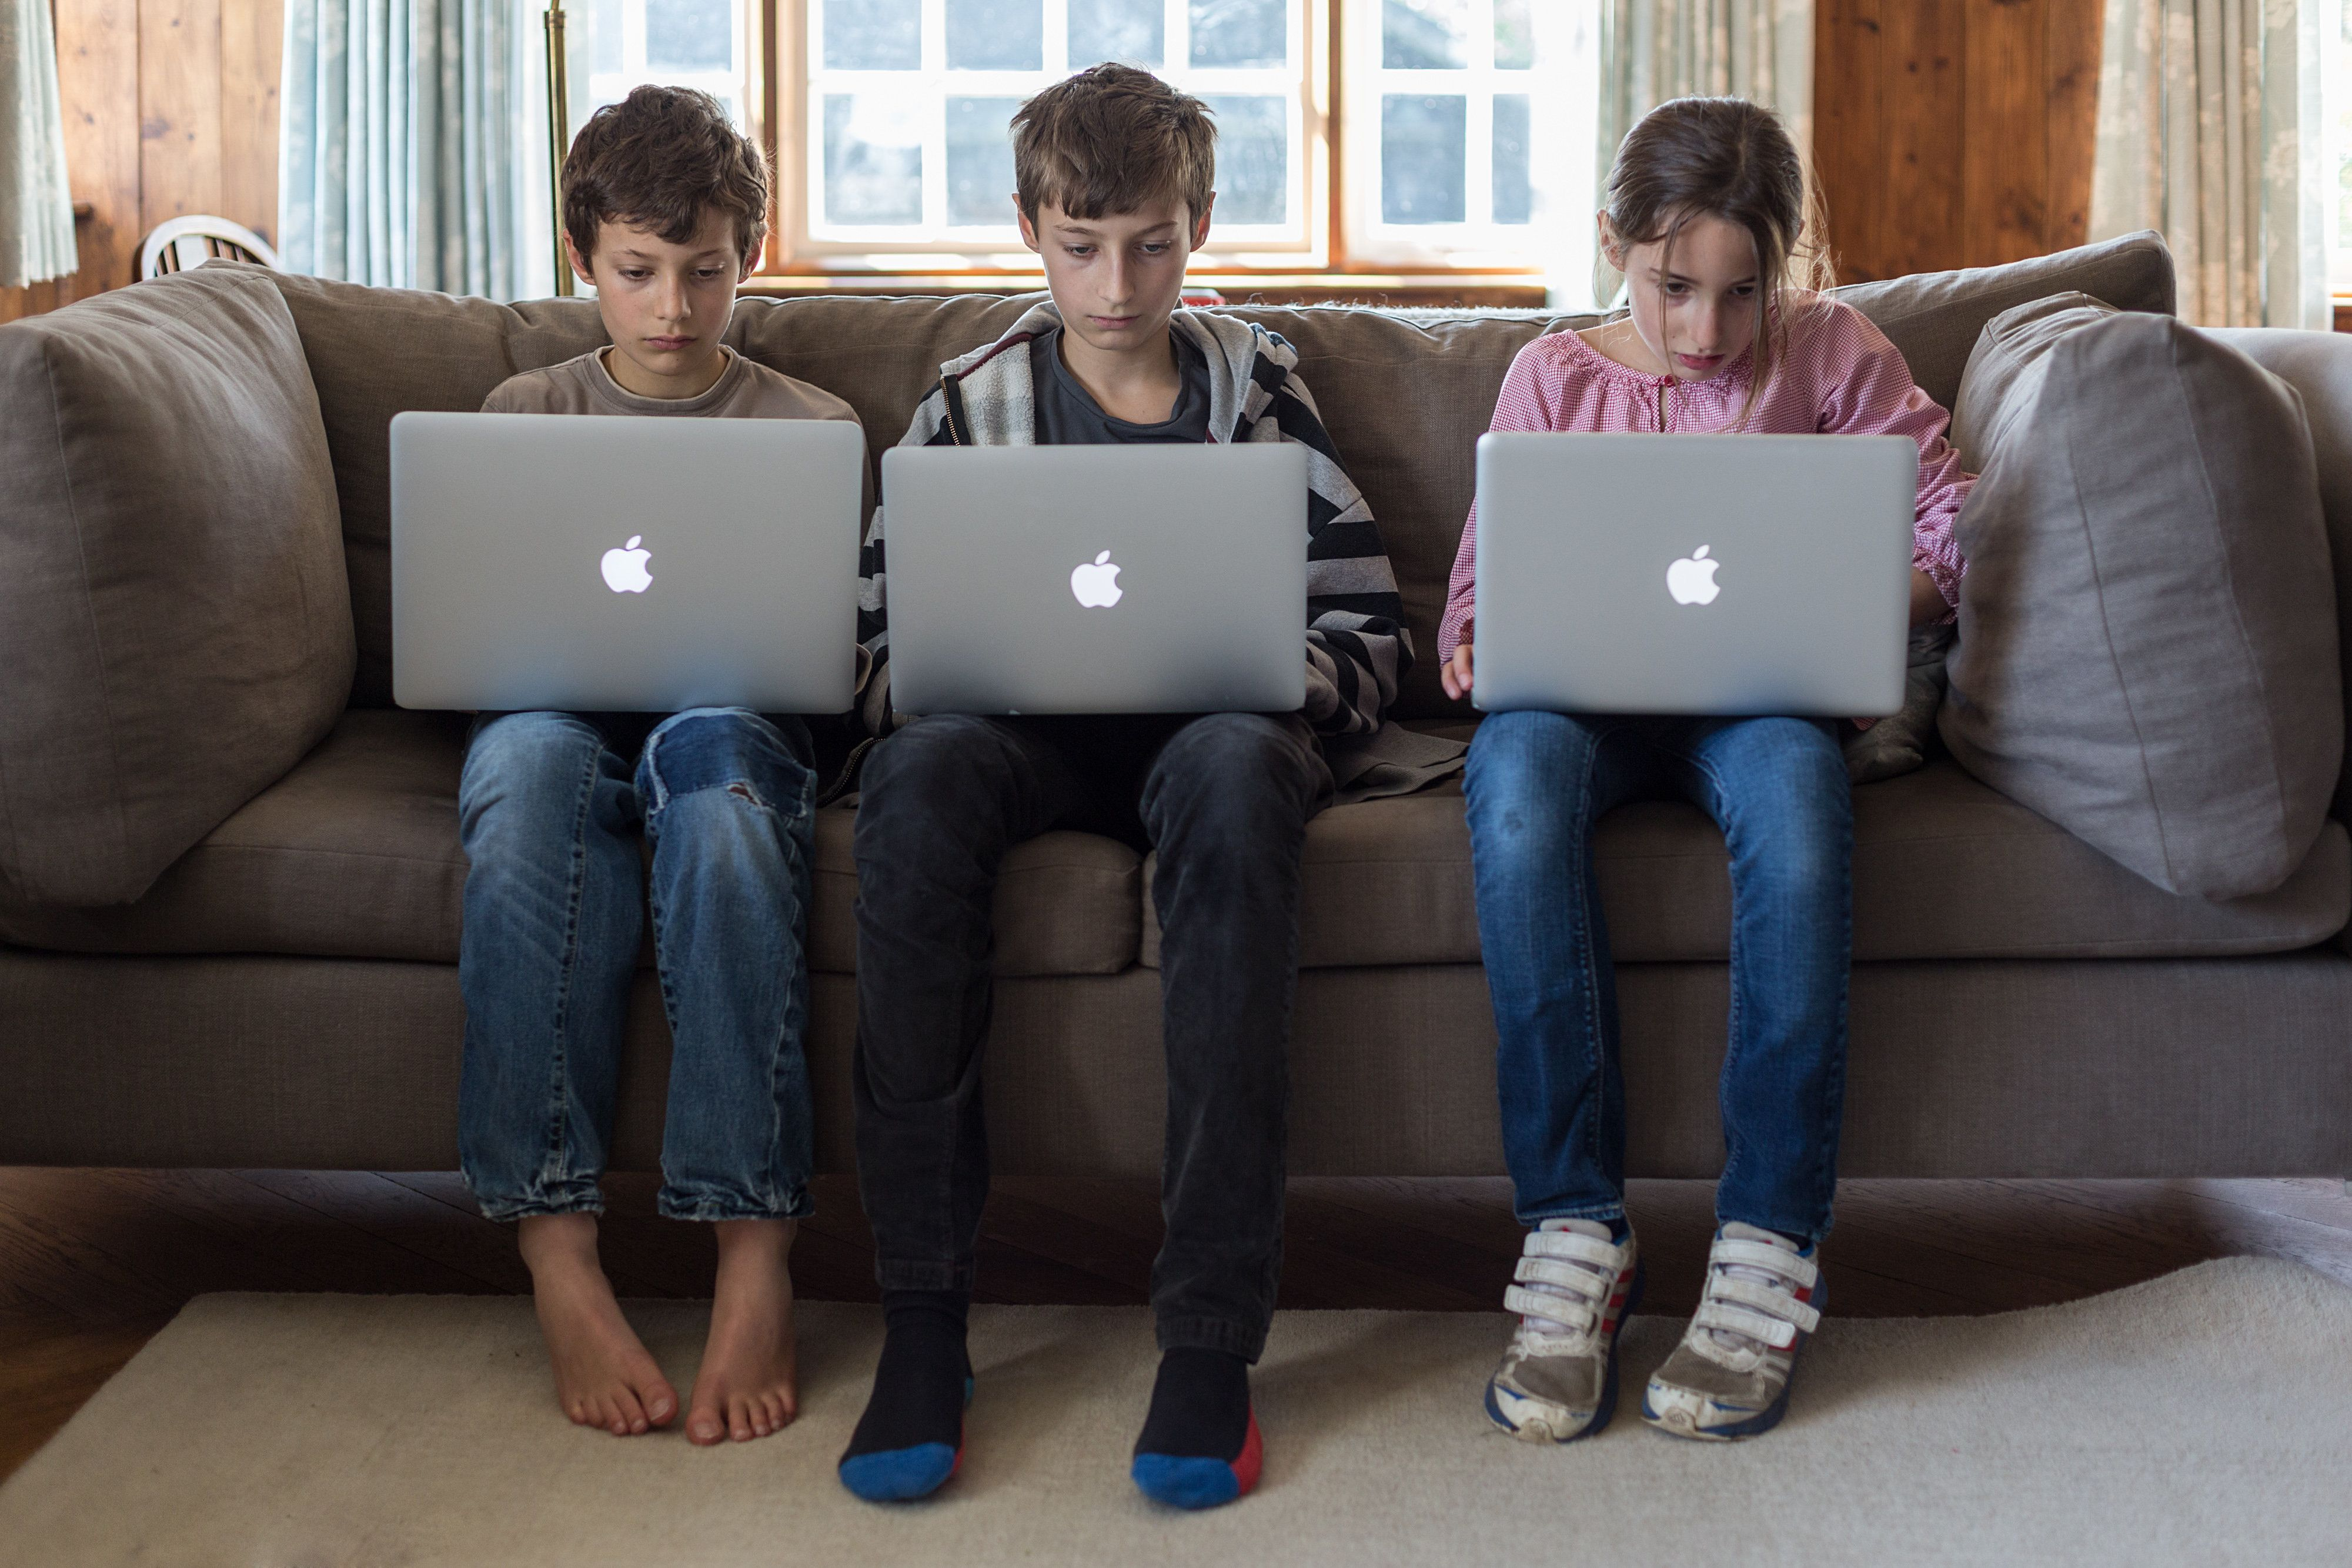 Three kids intensely playing on laptops